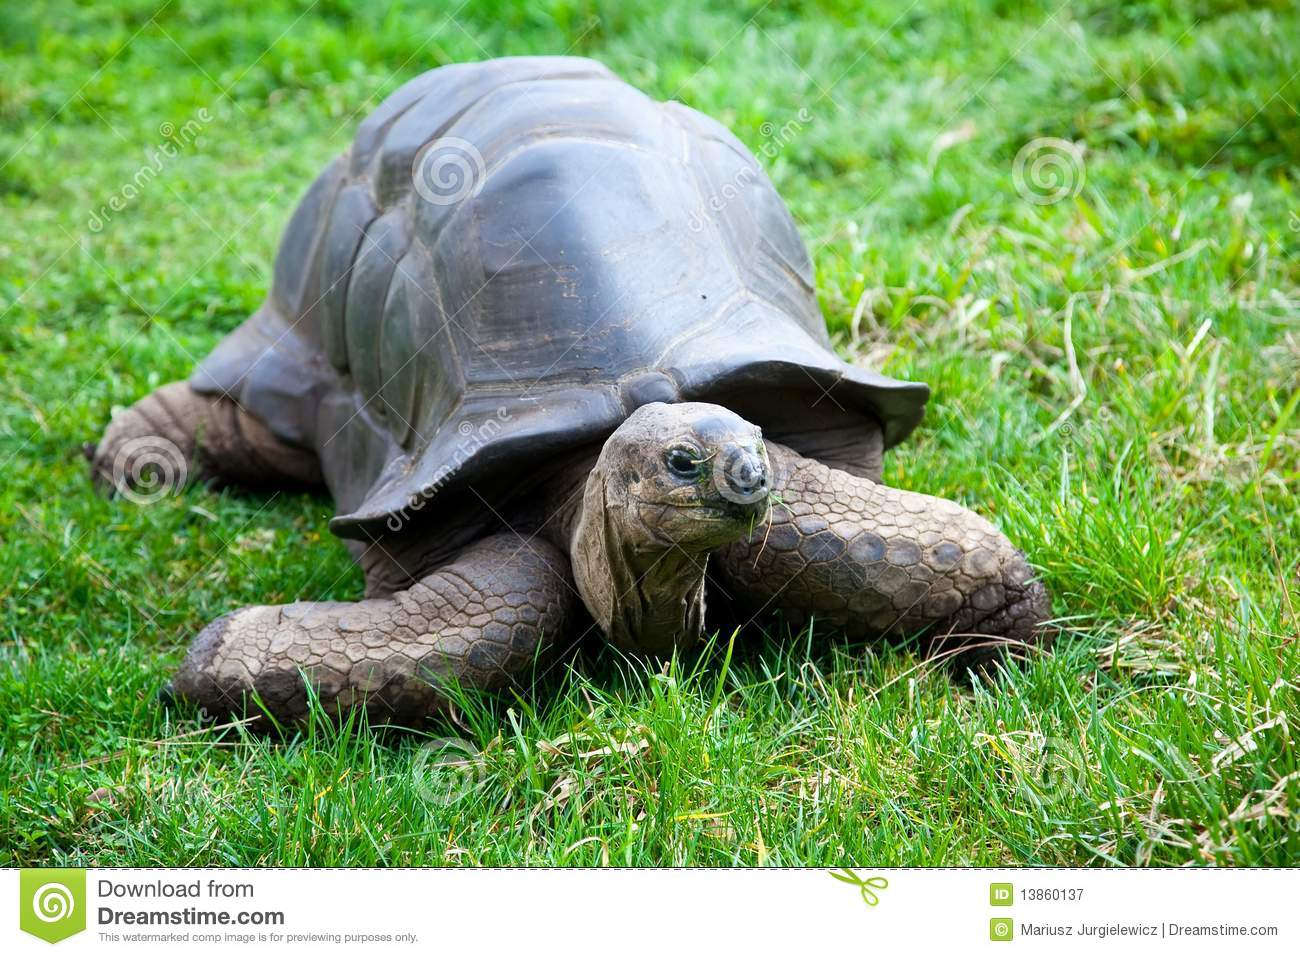 Aldabra Giant Tortoise clipart #12, Download drawings